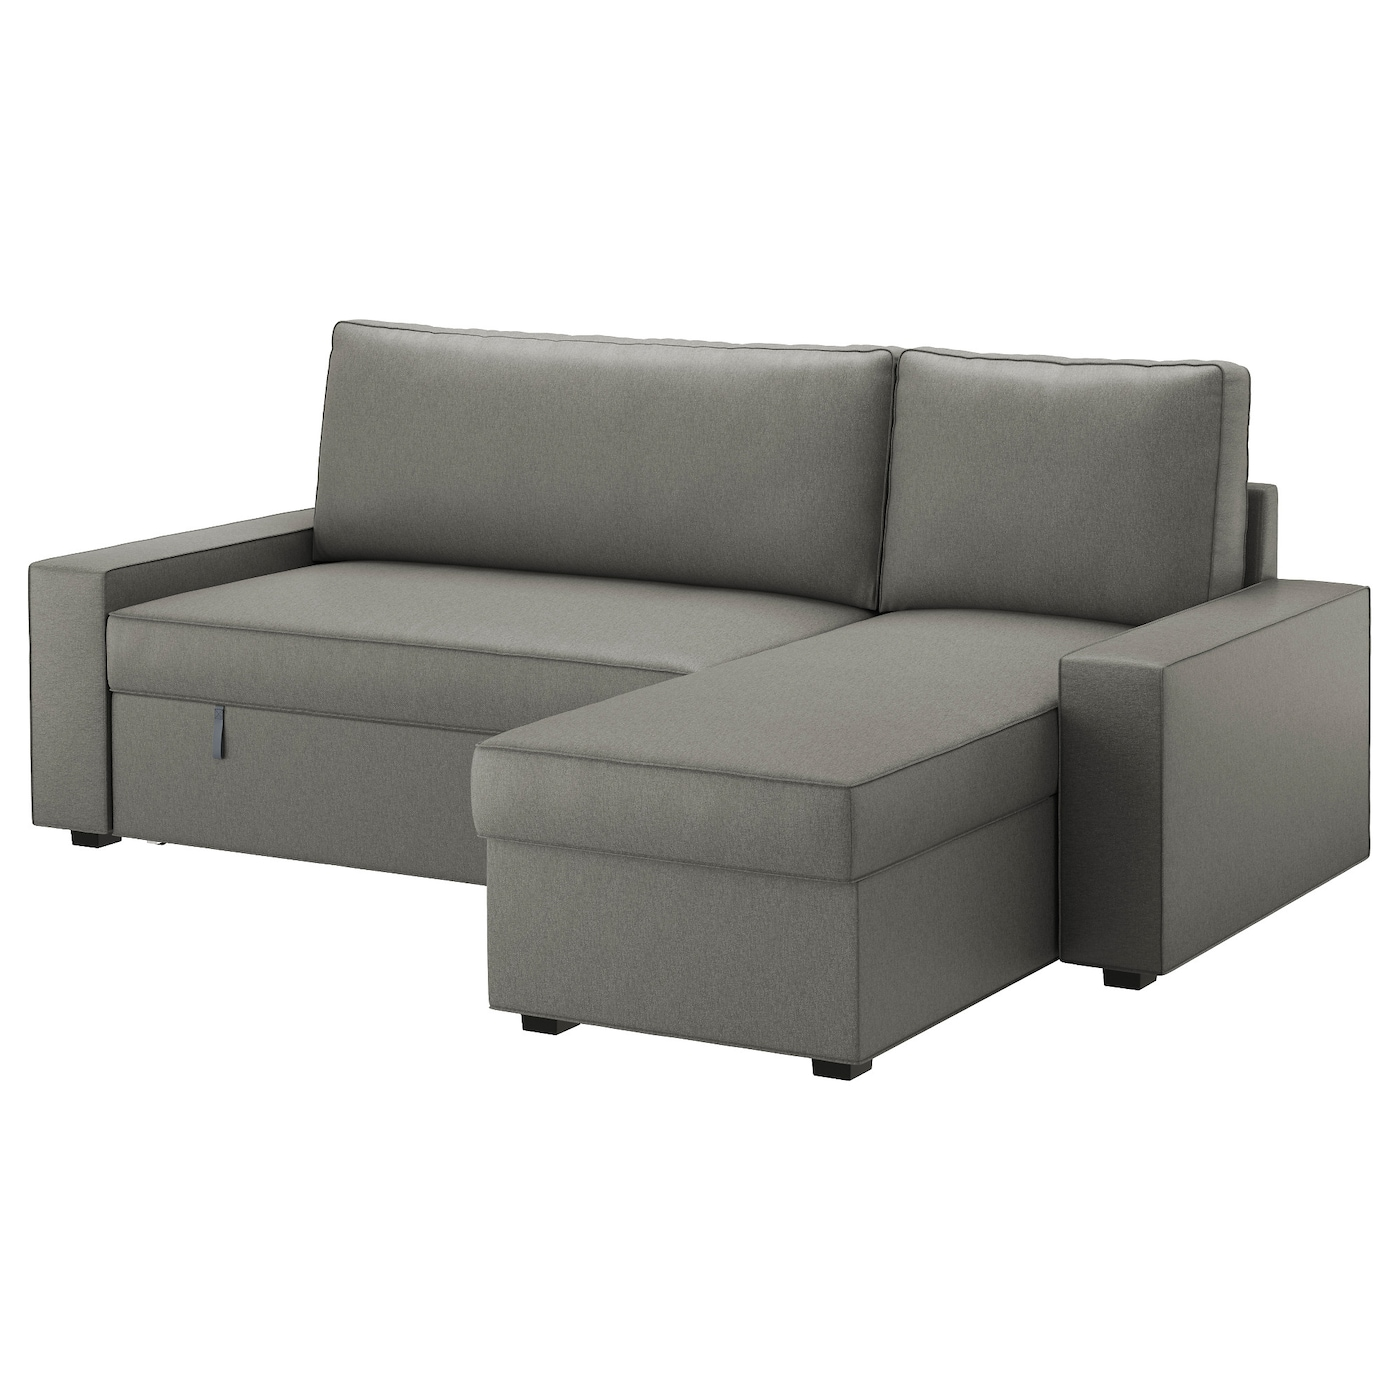 Vilasund sofa bed with chaise longue borred grey green ikea for Chaise longue ikea